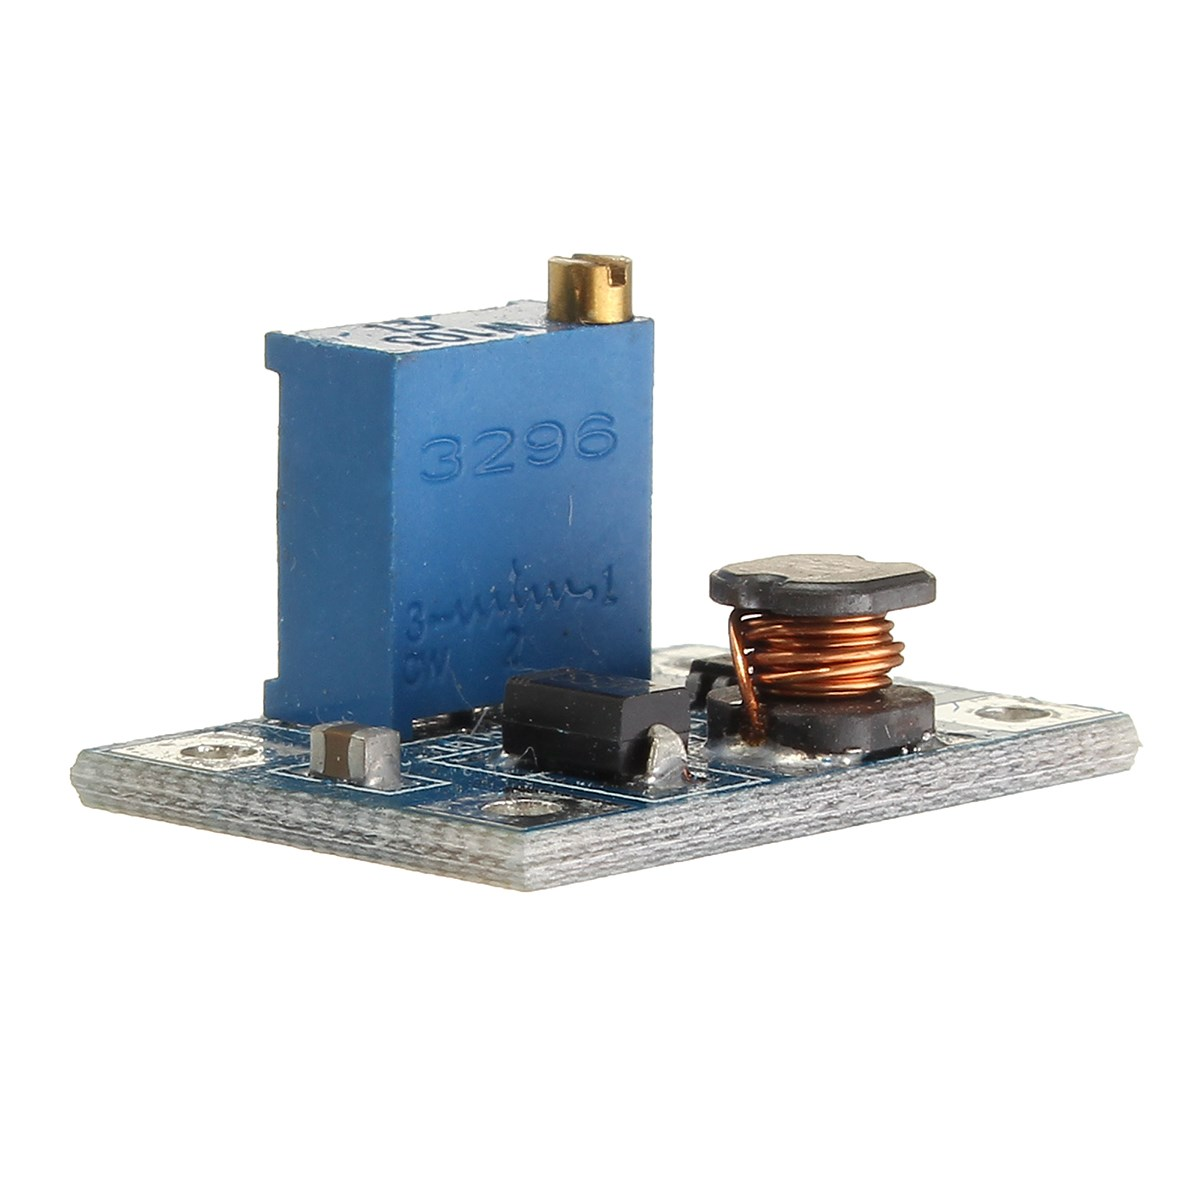 1PC SX1308 2A DC-DC Step up boost Power supply Adjustable Converter Module Integrated Circuits